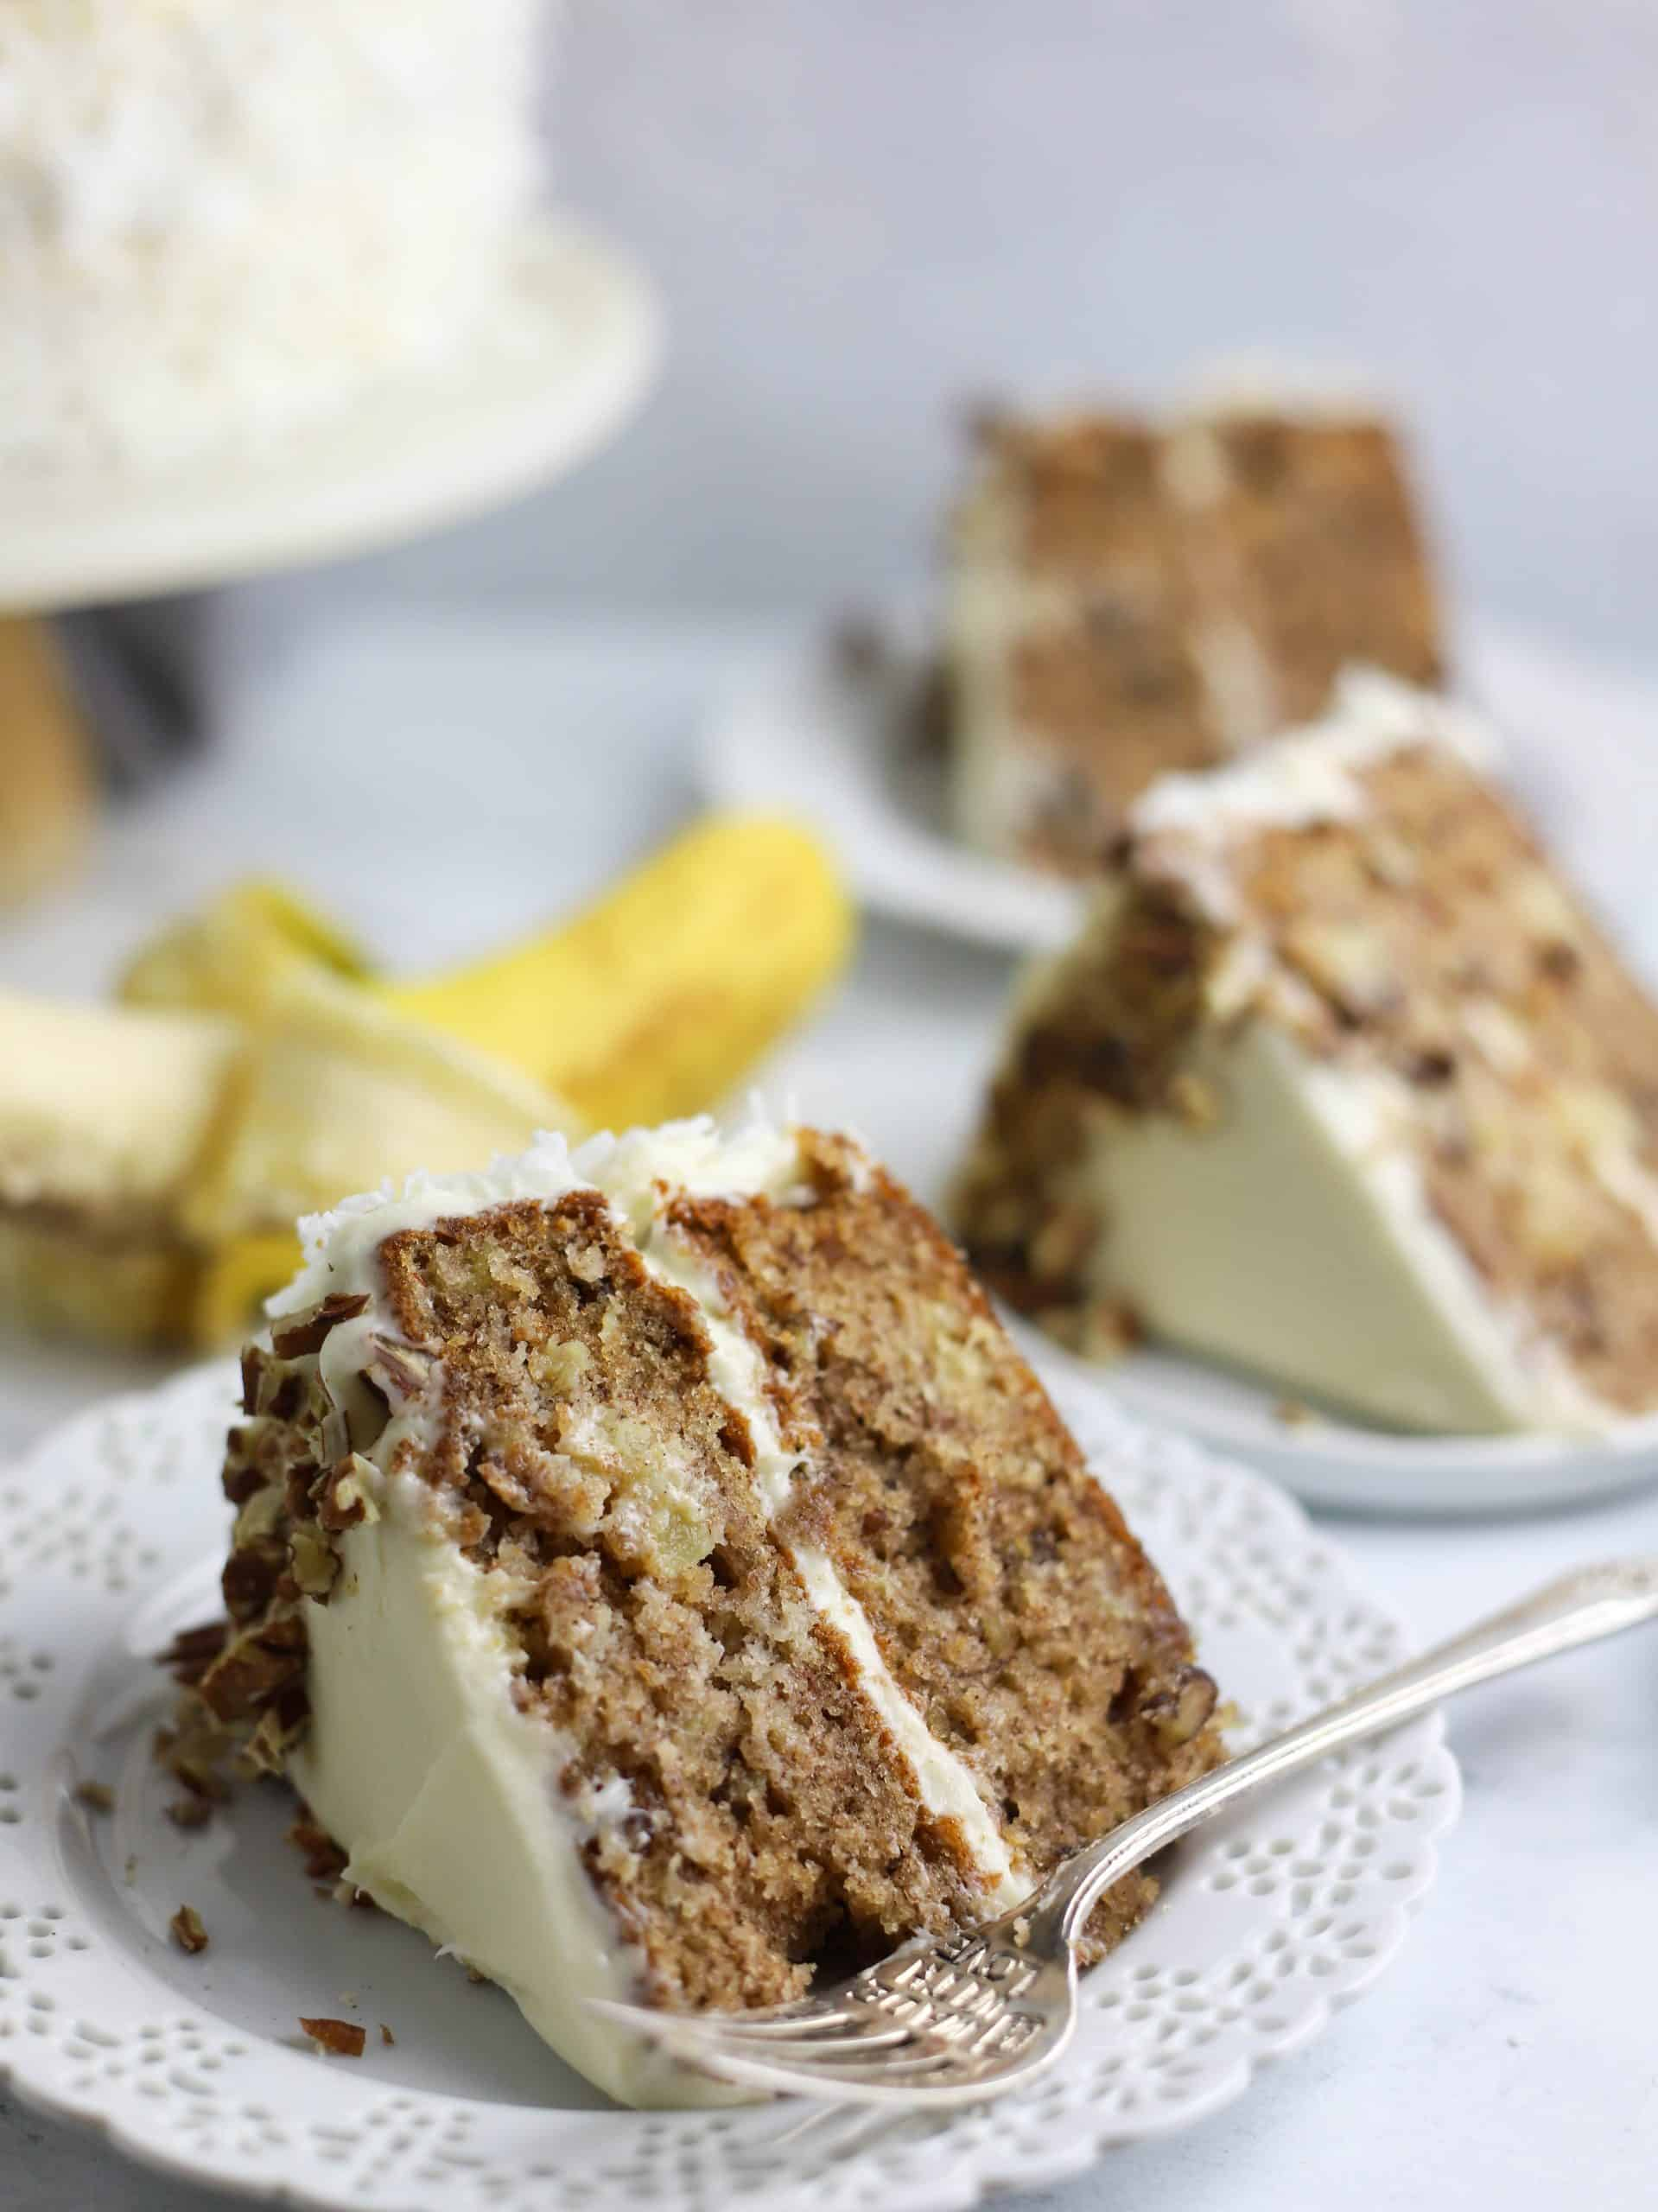 slice of hummingbird cake on a plate with a fork